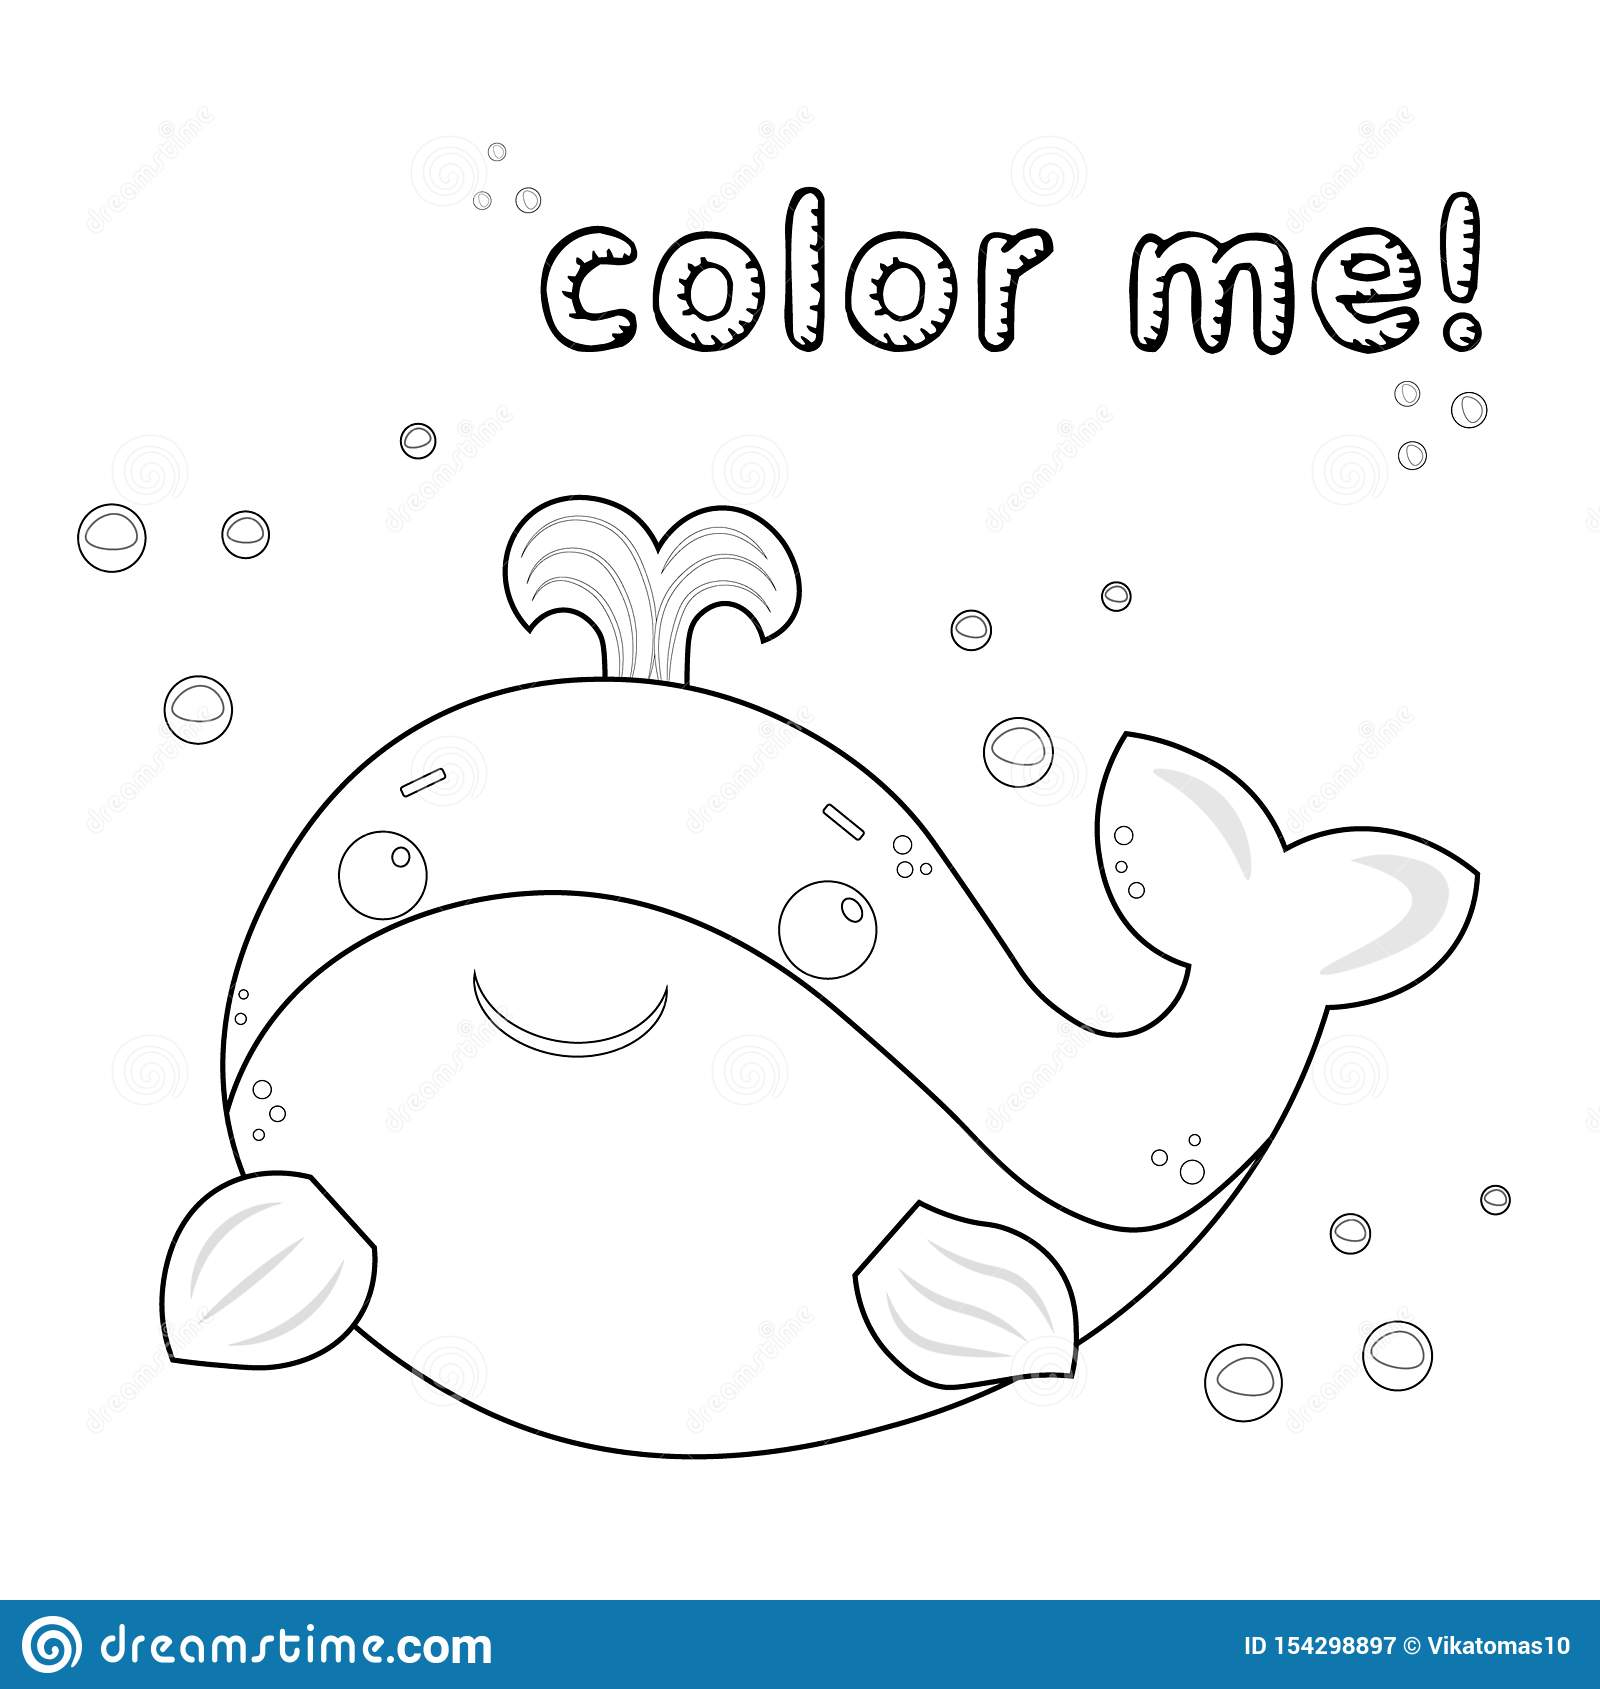 - Outline Whale. Coloring Page. Black And White Whale Cartoon